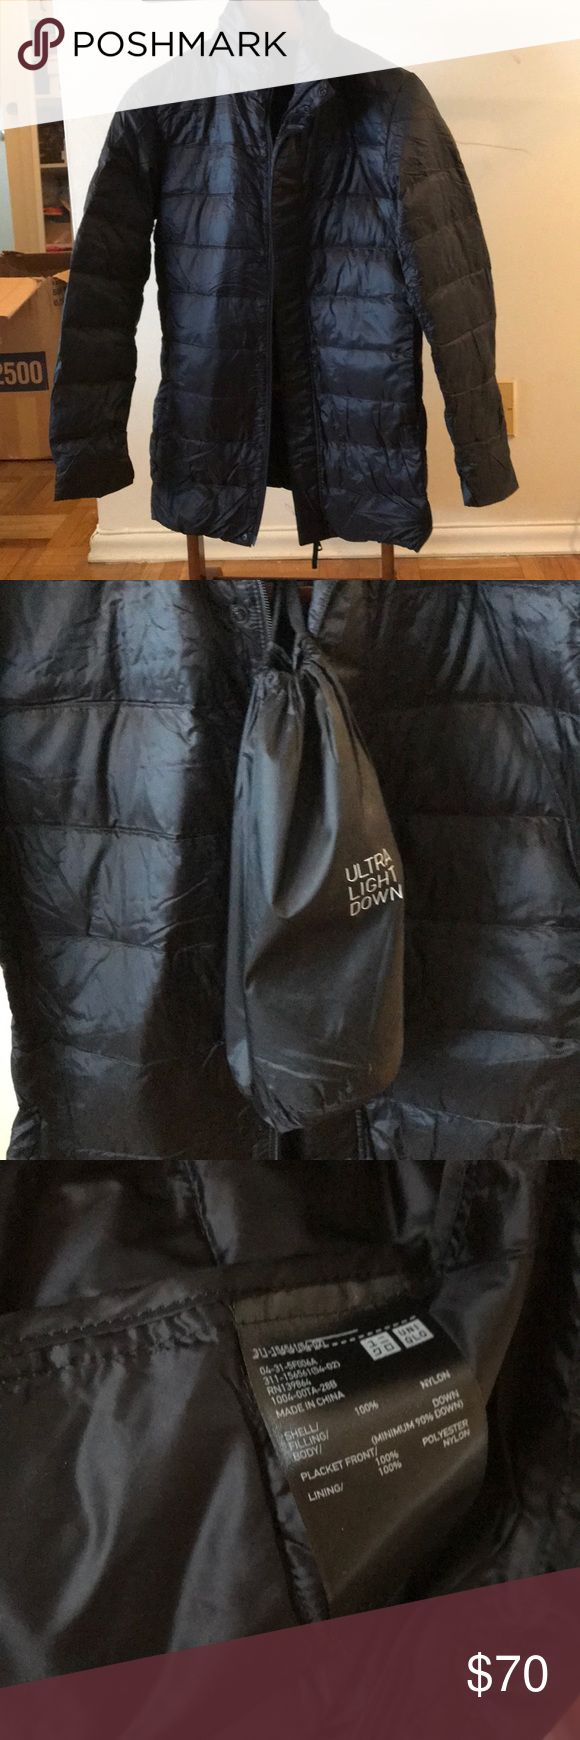 NWOT Uniqlo Black ultra light down jacket small New without tags men's size small Uniqlo ultra light down long jacket.  Also has storable hood in the color and storage bag. Tags were removed but has never been worn outside. Uniqlo Jackets & Coats Puffers